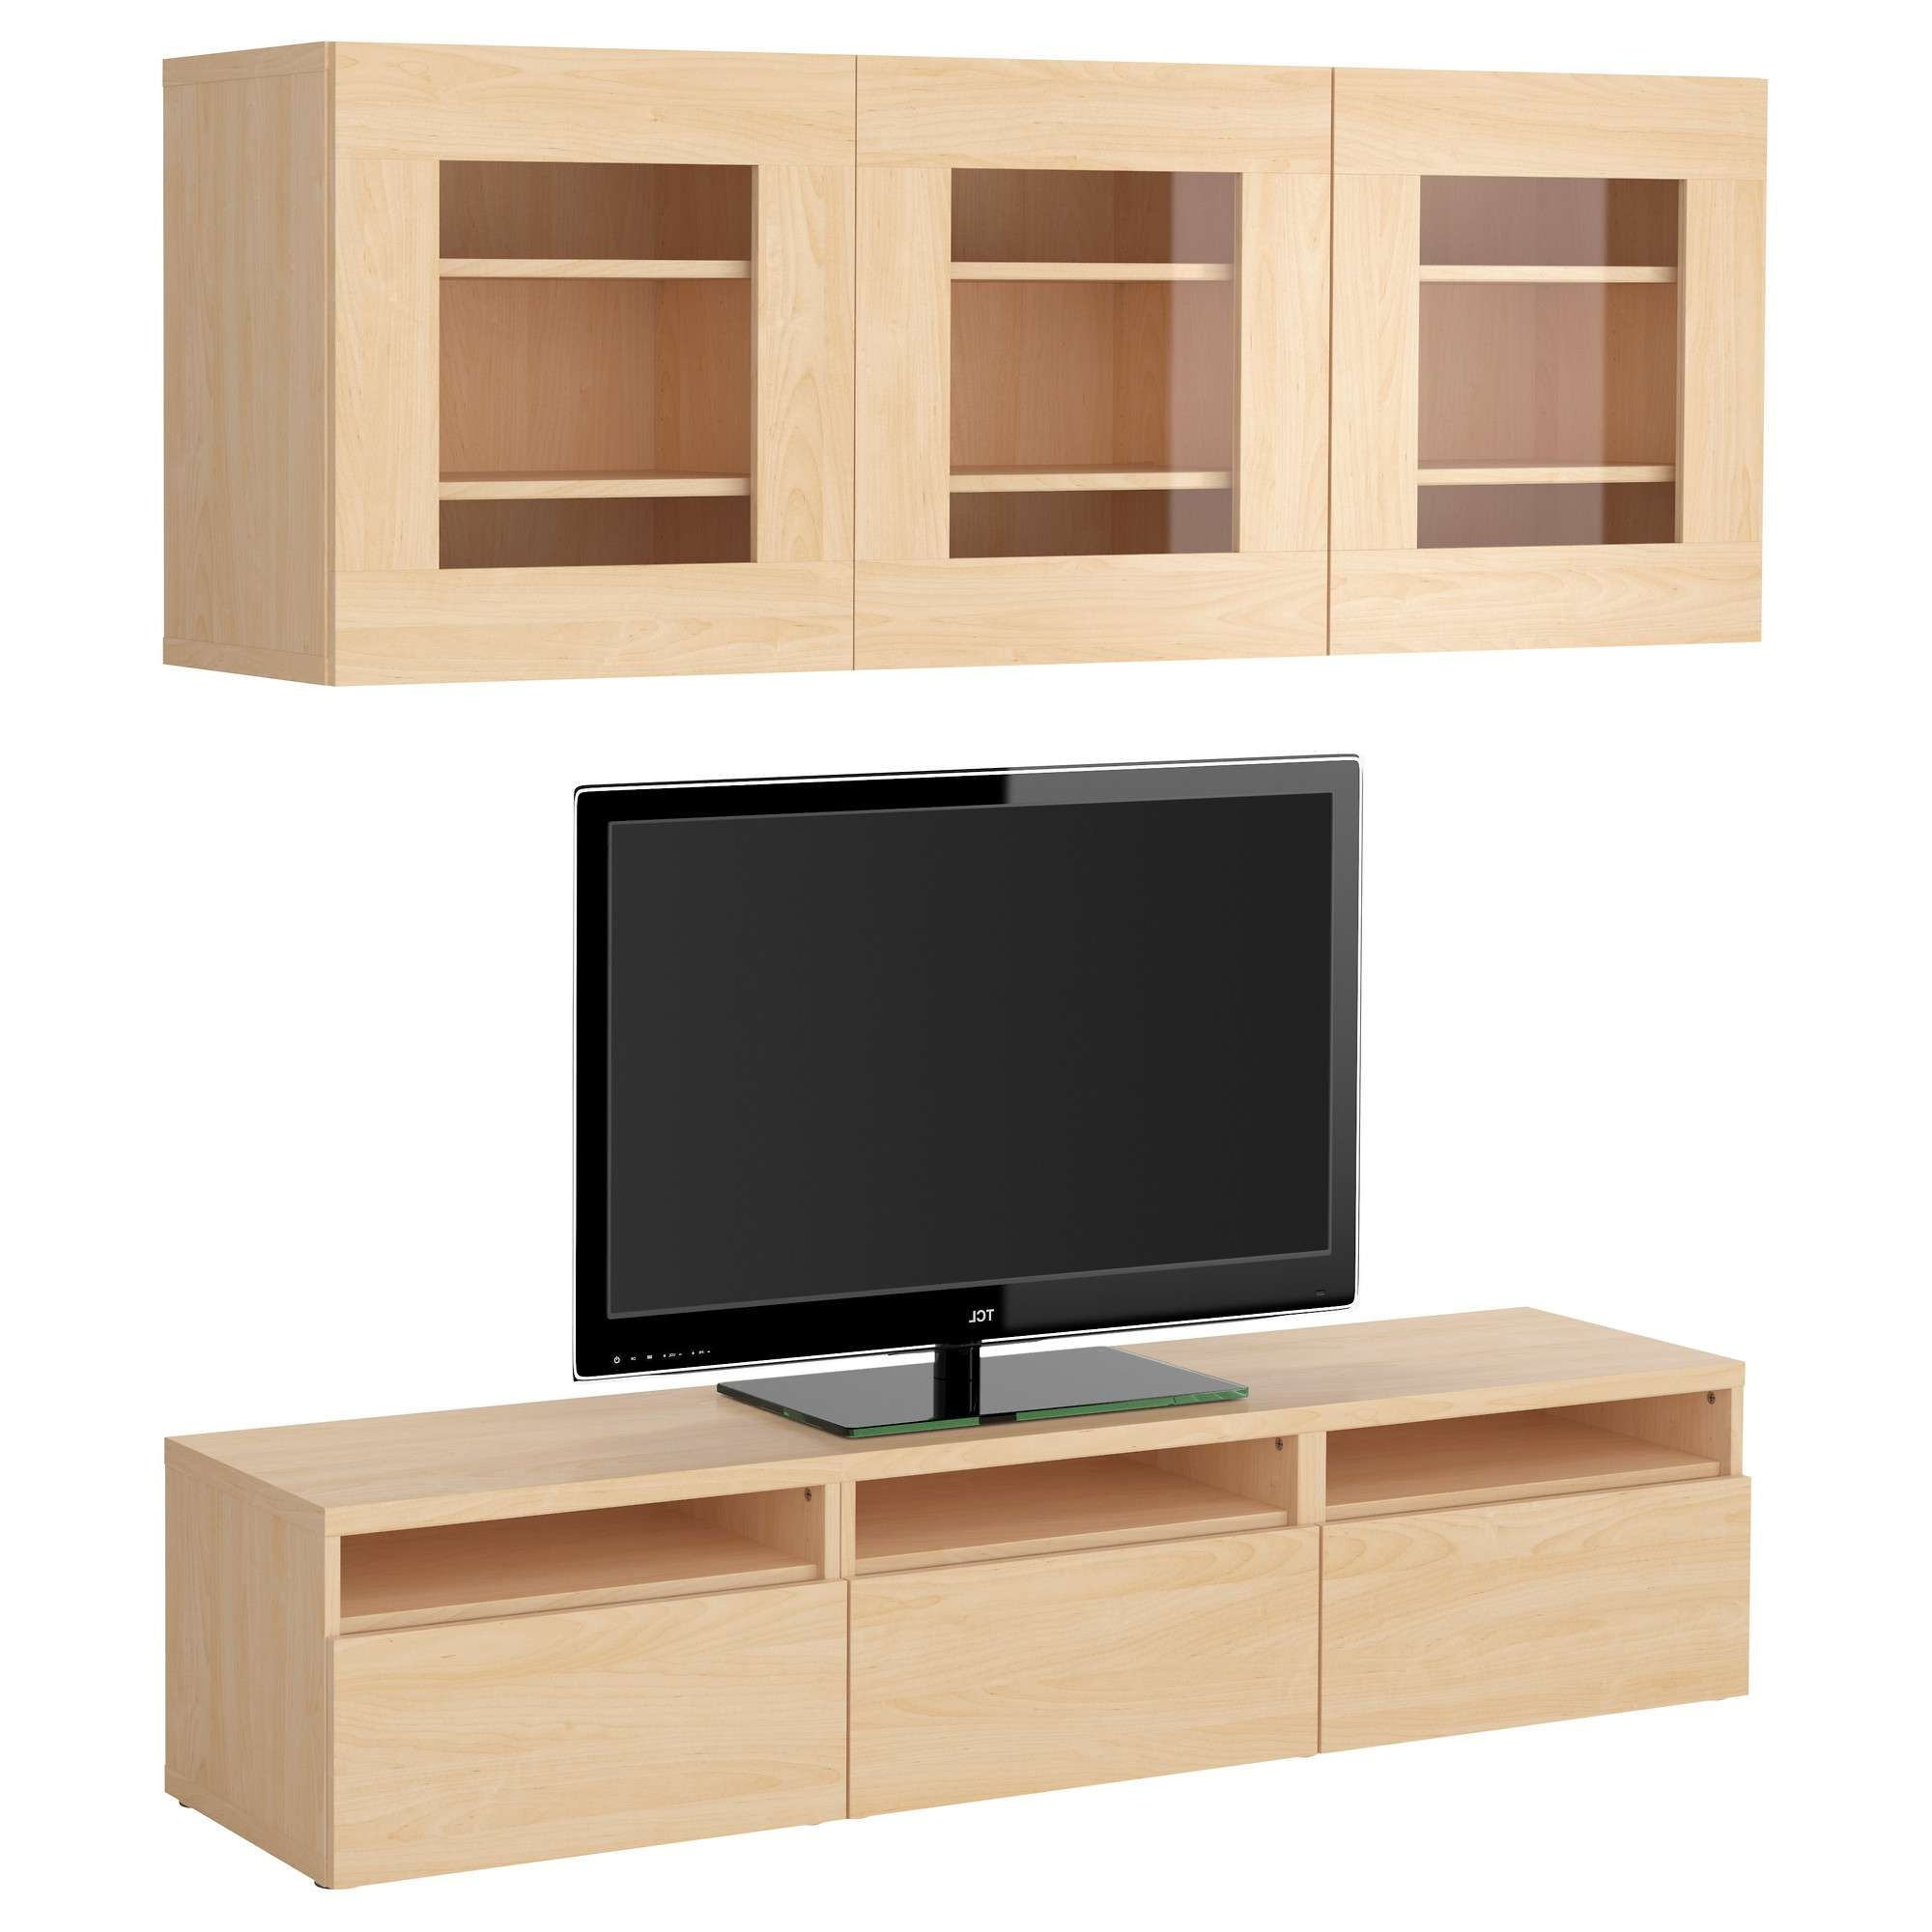 Online Room Planner Ikea With Minimalist Tv Stands Or Tv Cabinets With Birch Tv Stands (Gallery 7 of 15)